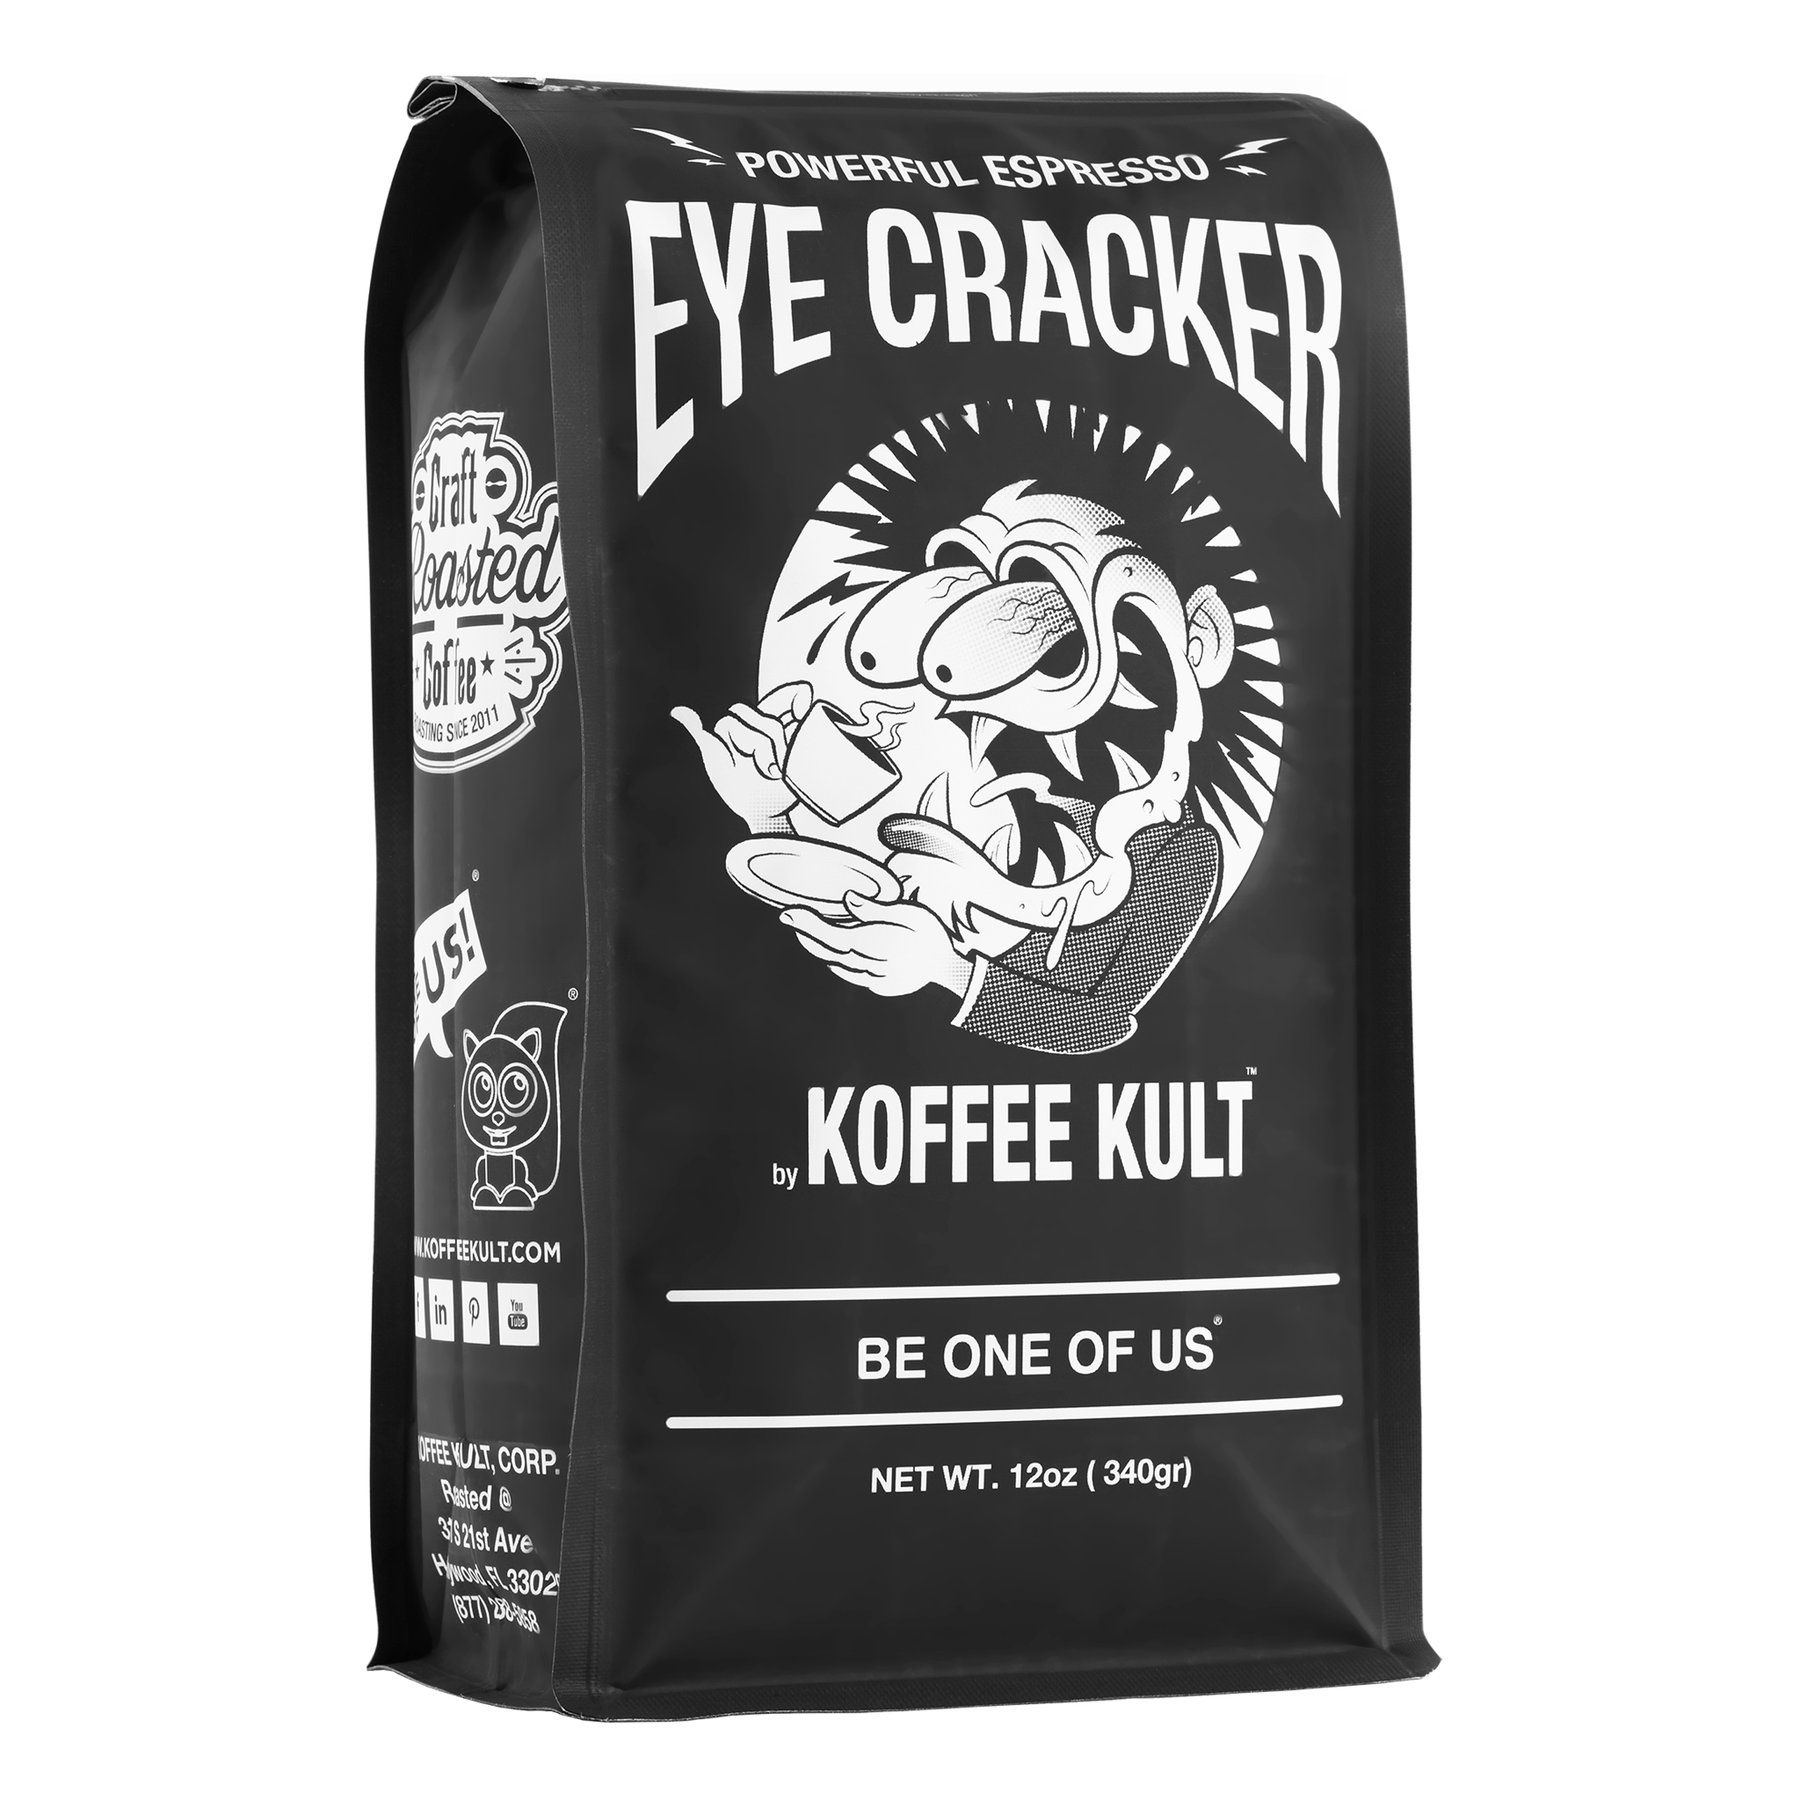 Powerful Espresso Coffee by Coffee Kult